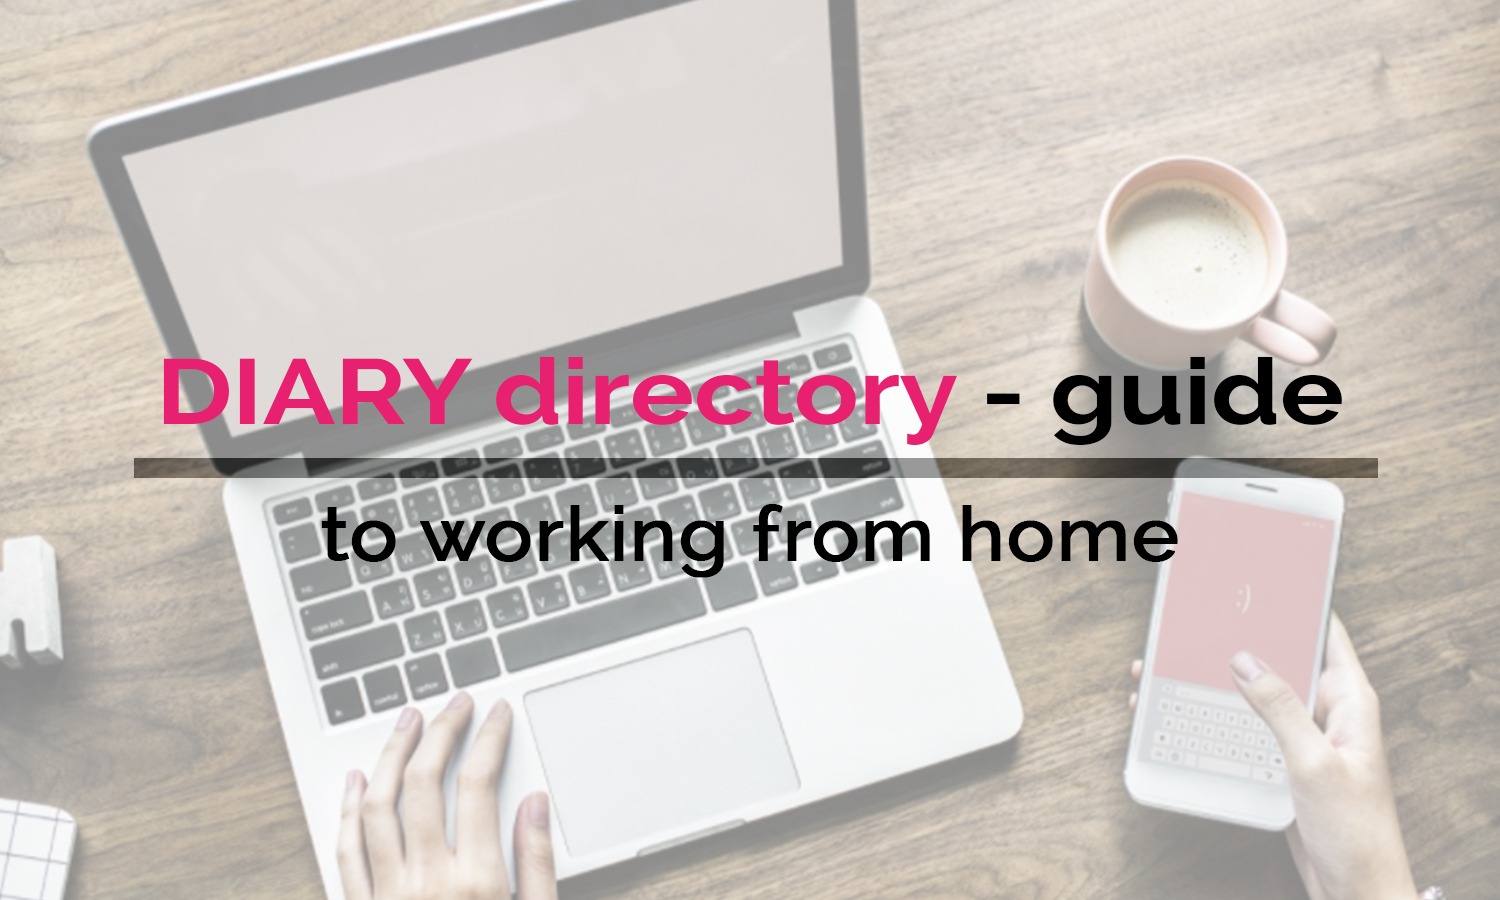 DIARY directory's guide to Working From Home